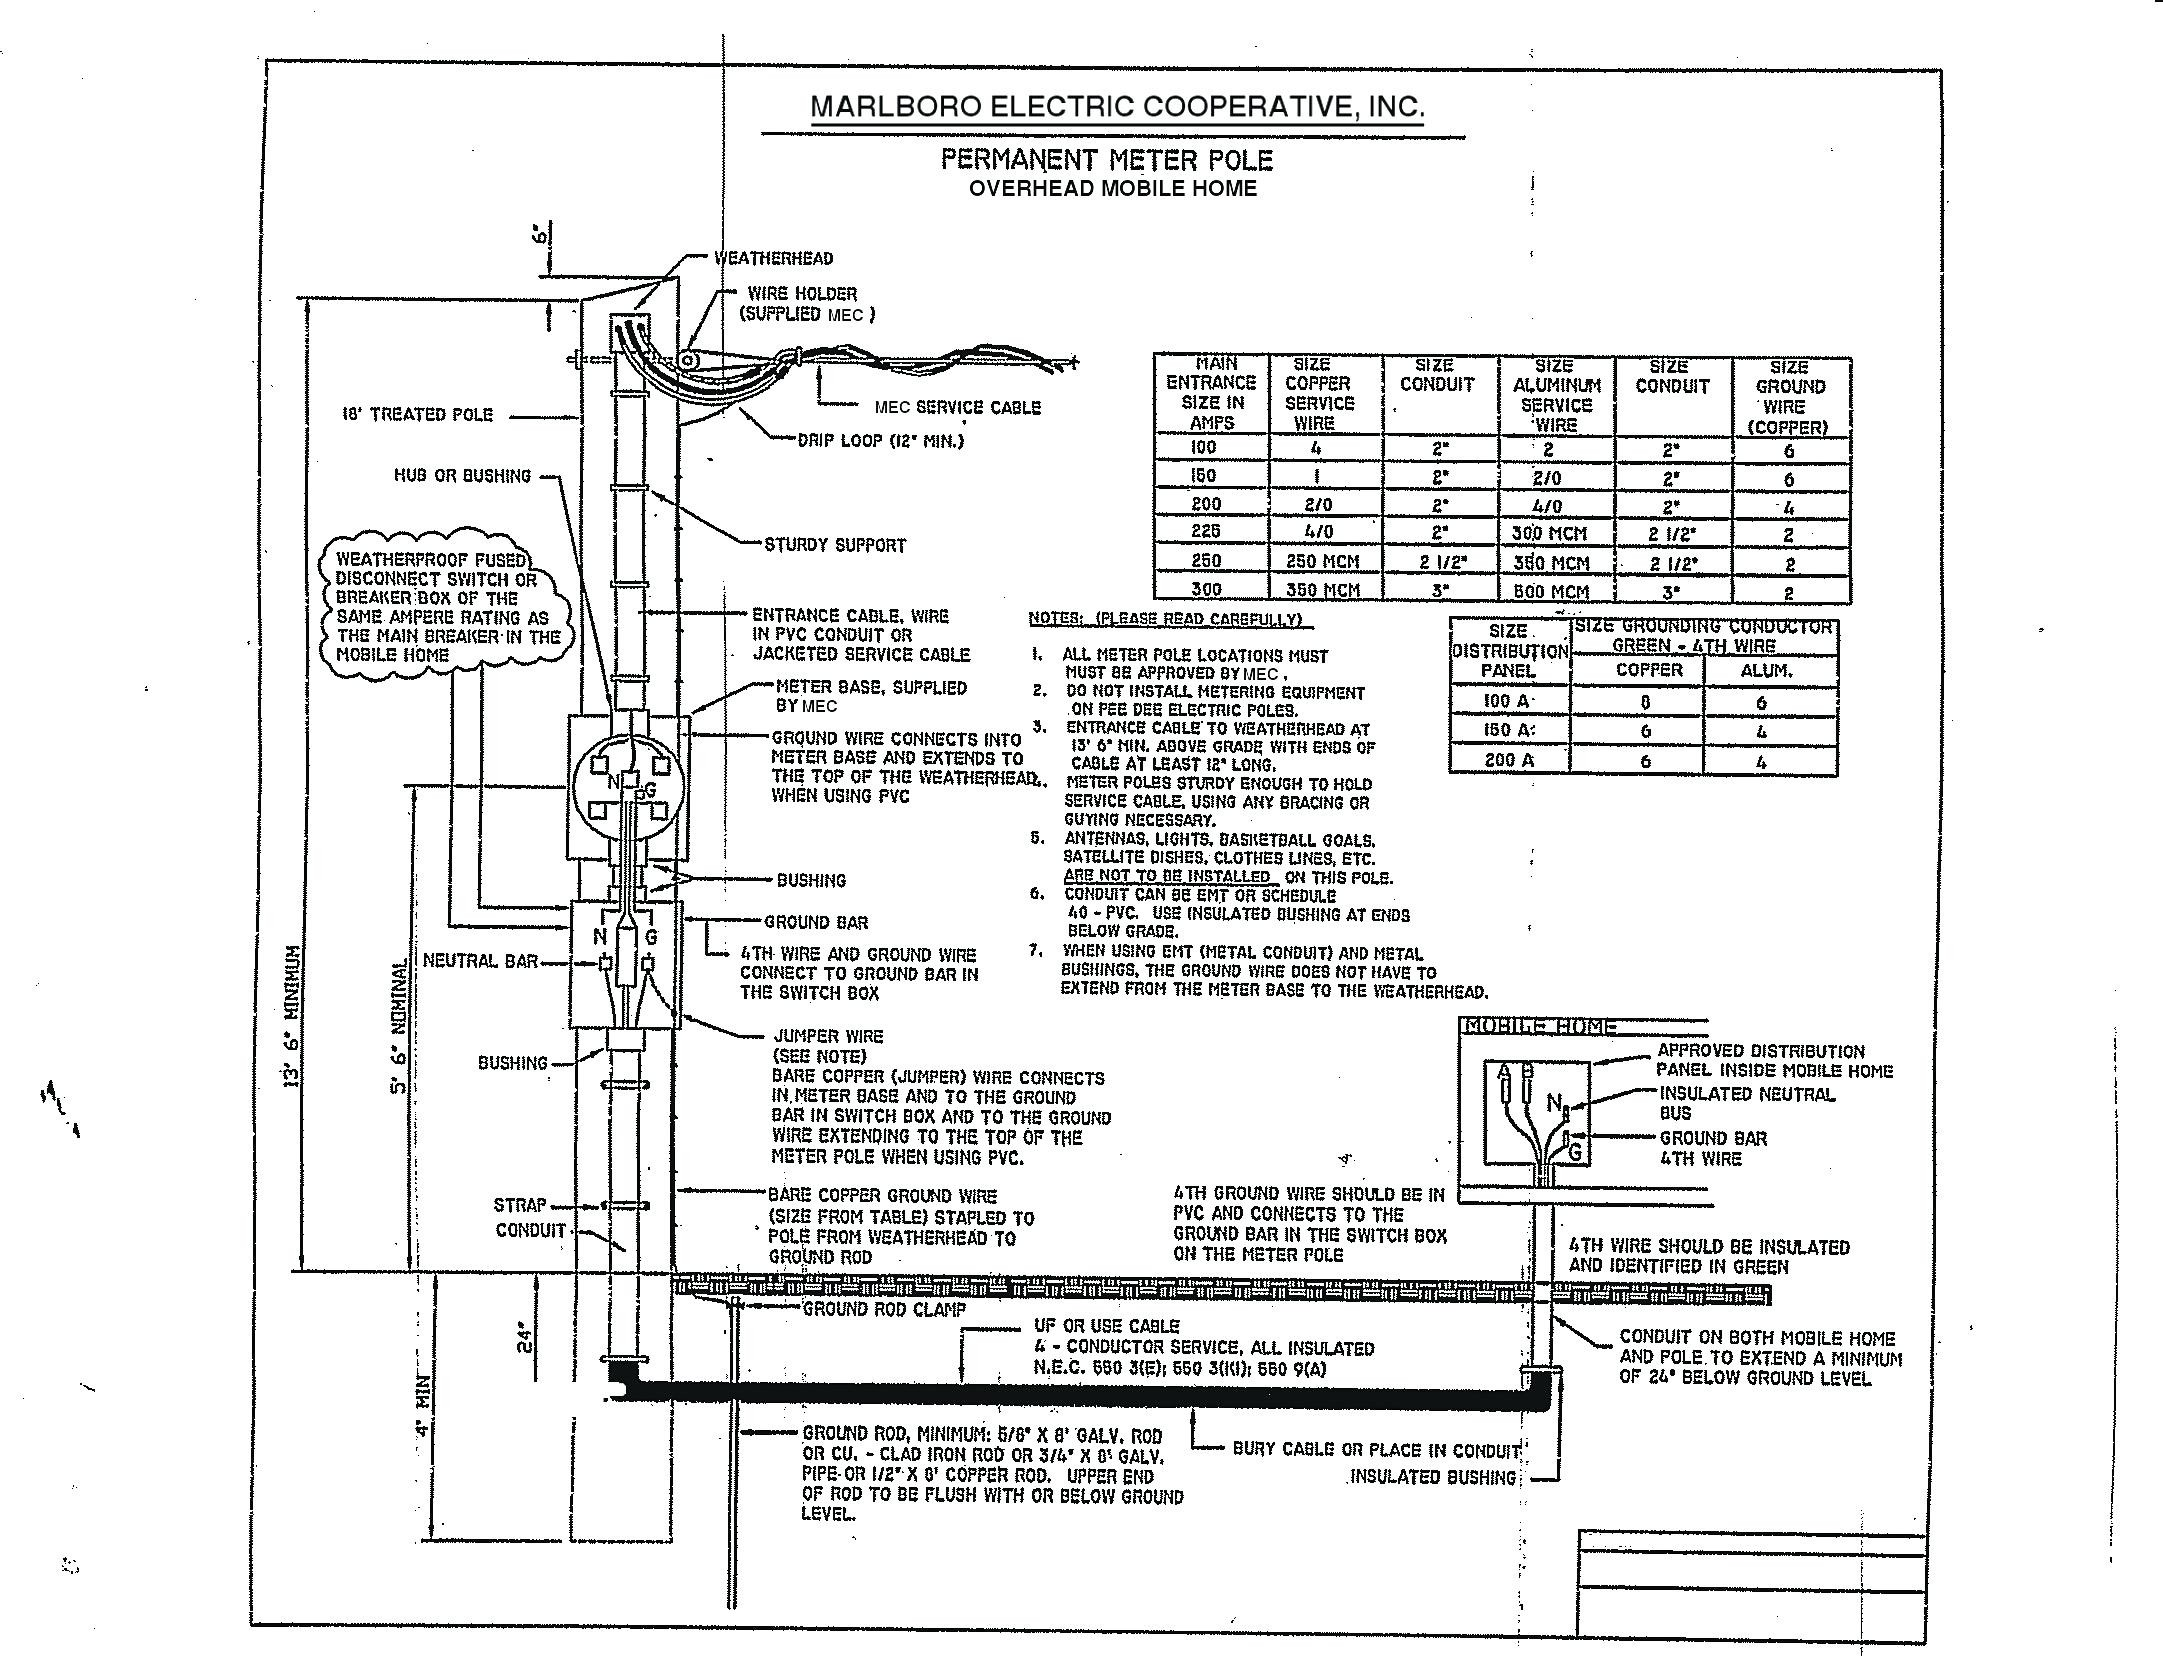 mobile home electrical service diagram wiring diagram post Customer Service Diagram